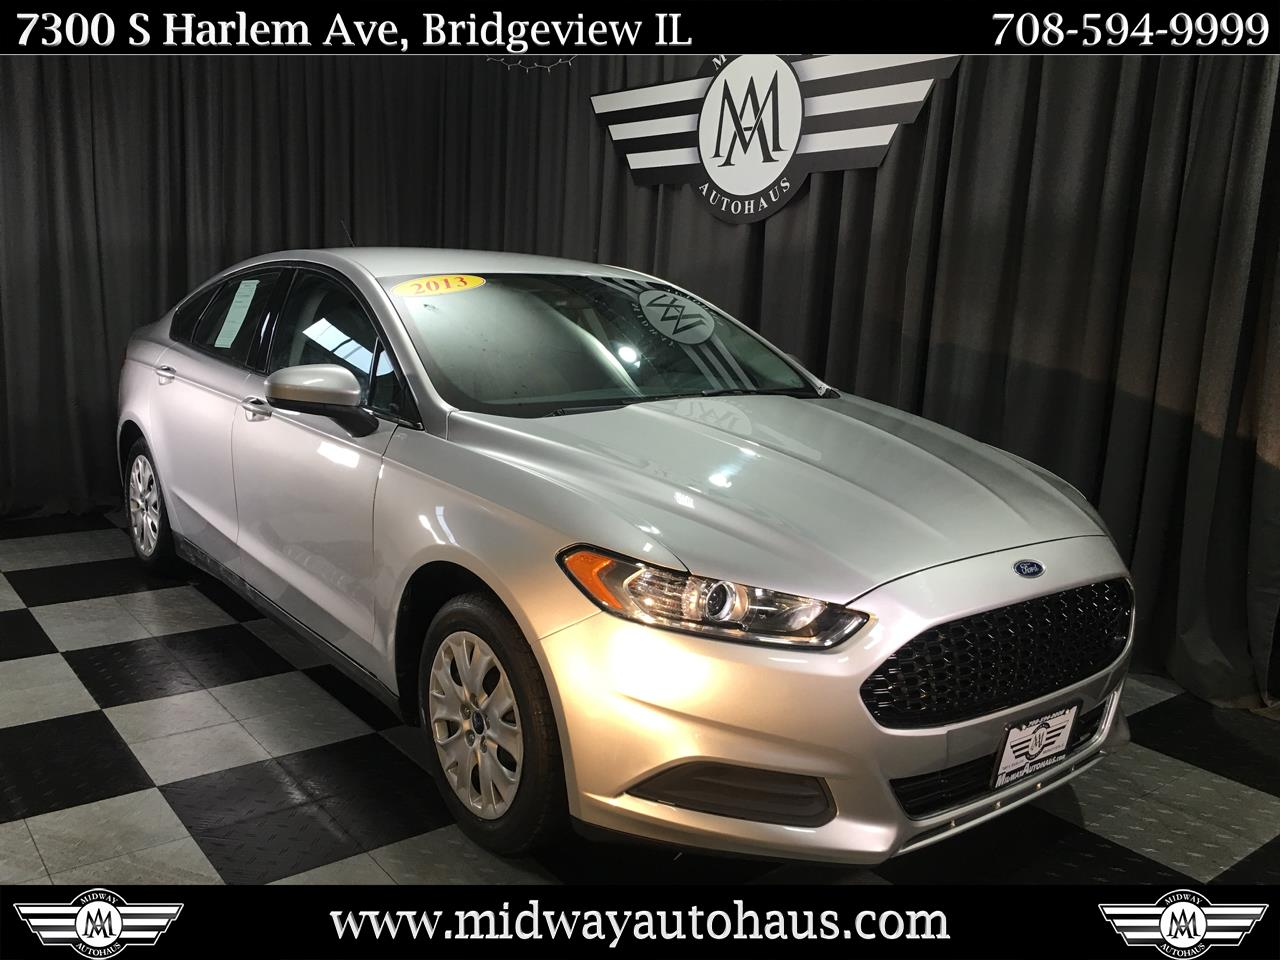 Pre-Owned 2013 Ford Fusion 4dr Sdn S FWD